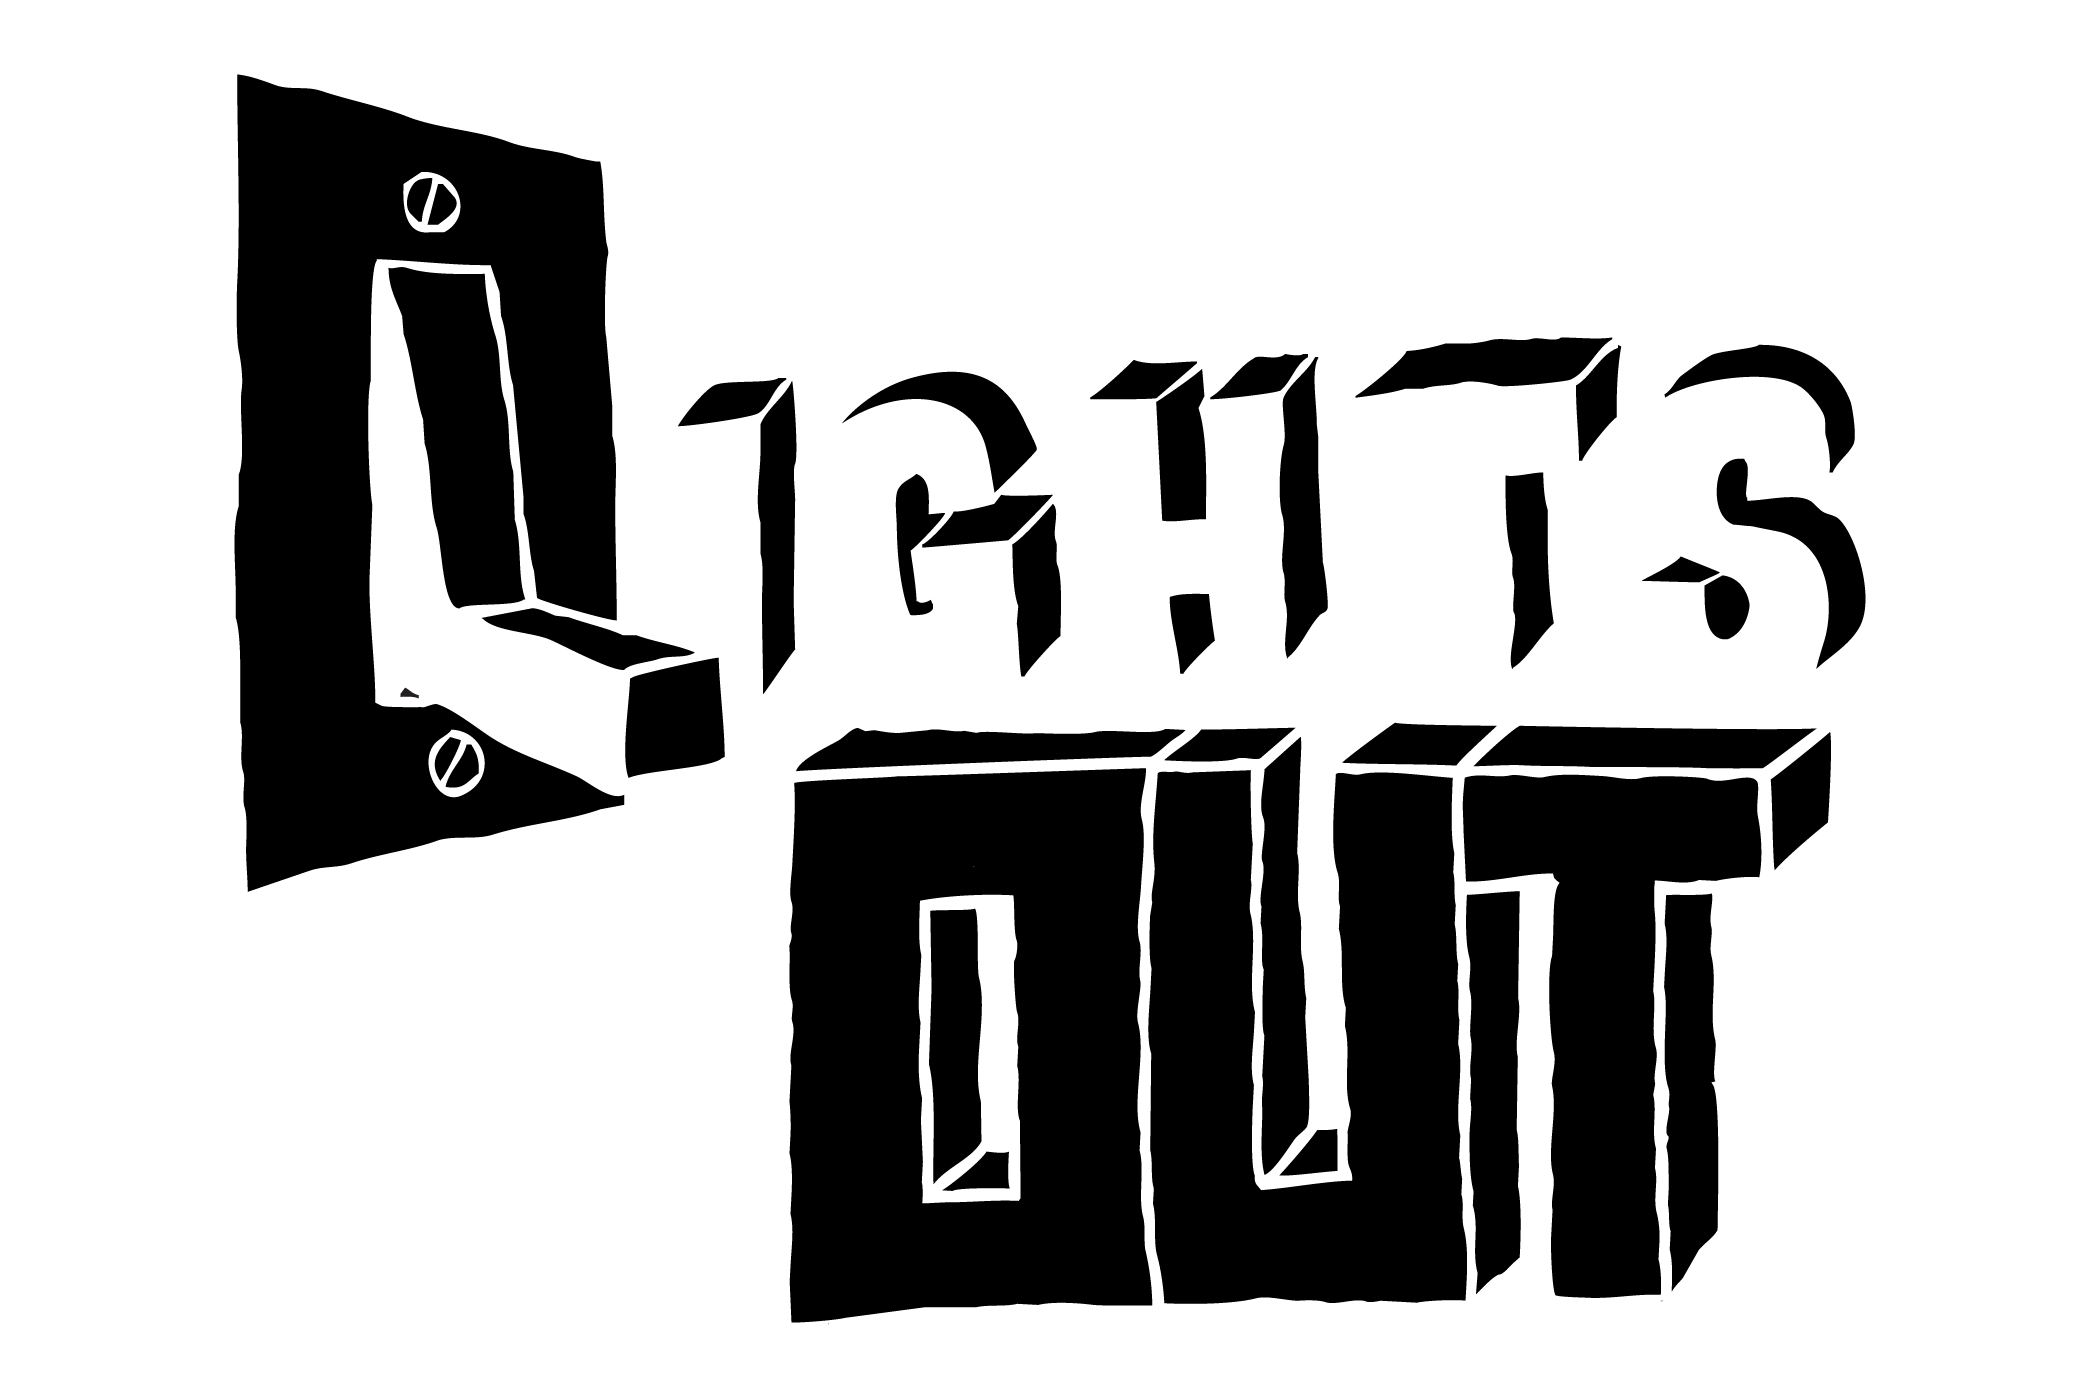 LightsOut.png